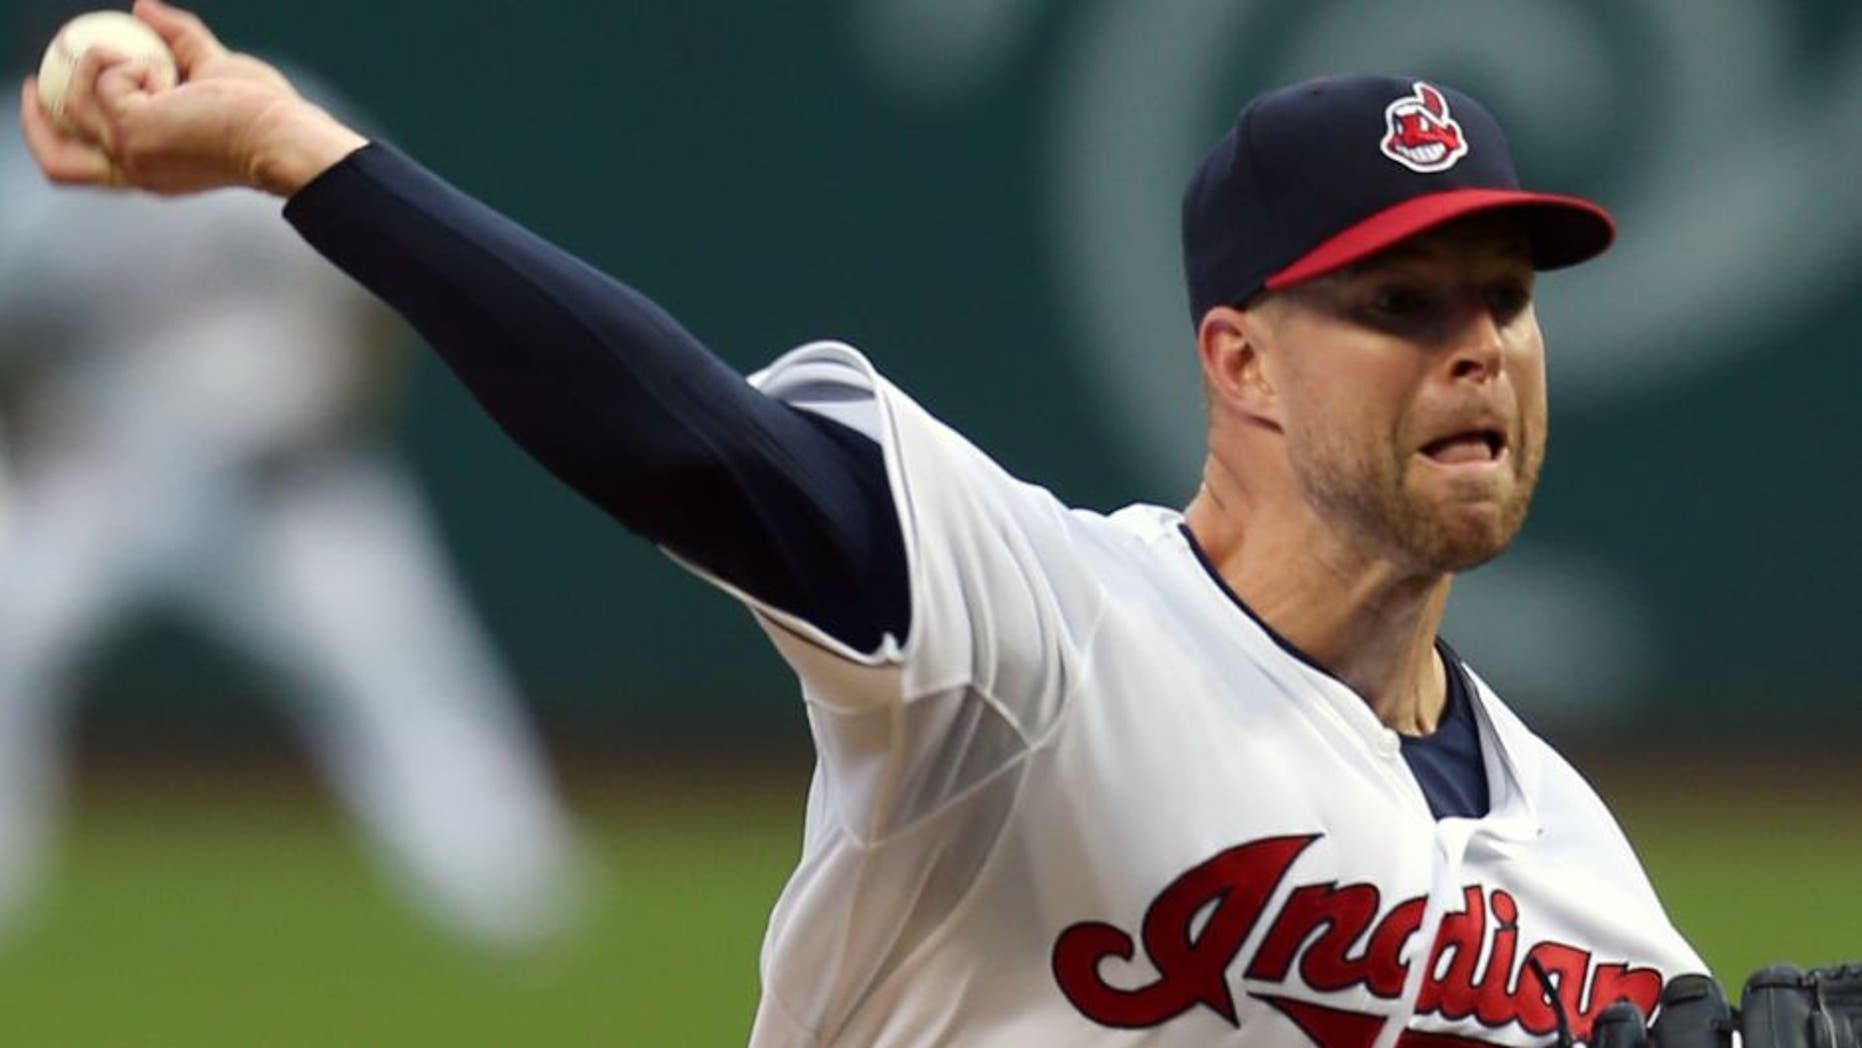 Cleveland Indians starting pitcher Corey Kluber pitches to Houston Astros' Preston Tucker during the first inning of a baseball game, Tuesday, July 7, 2015, in Cleveland.